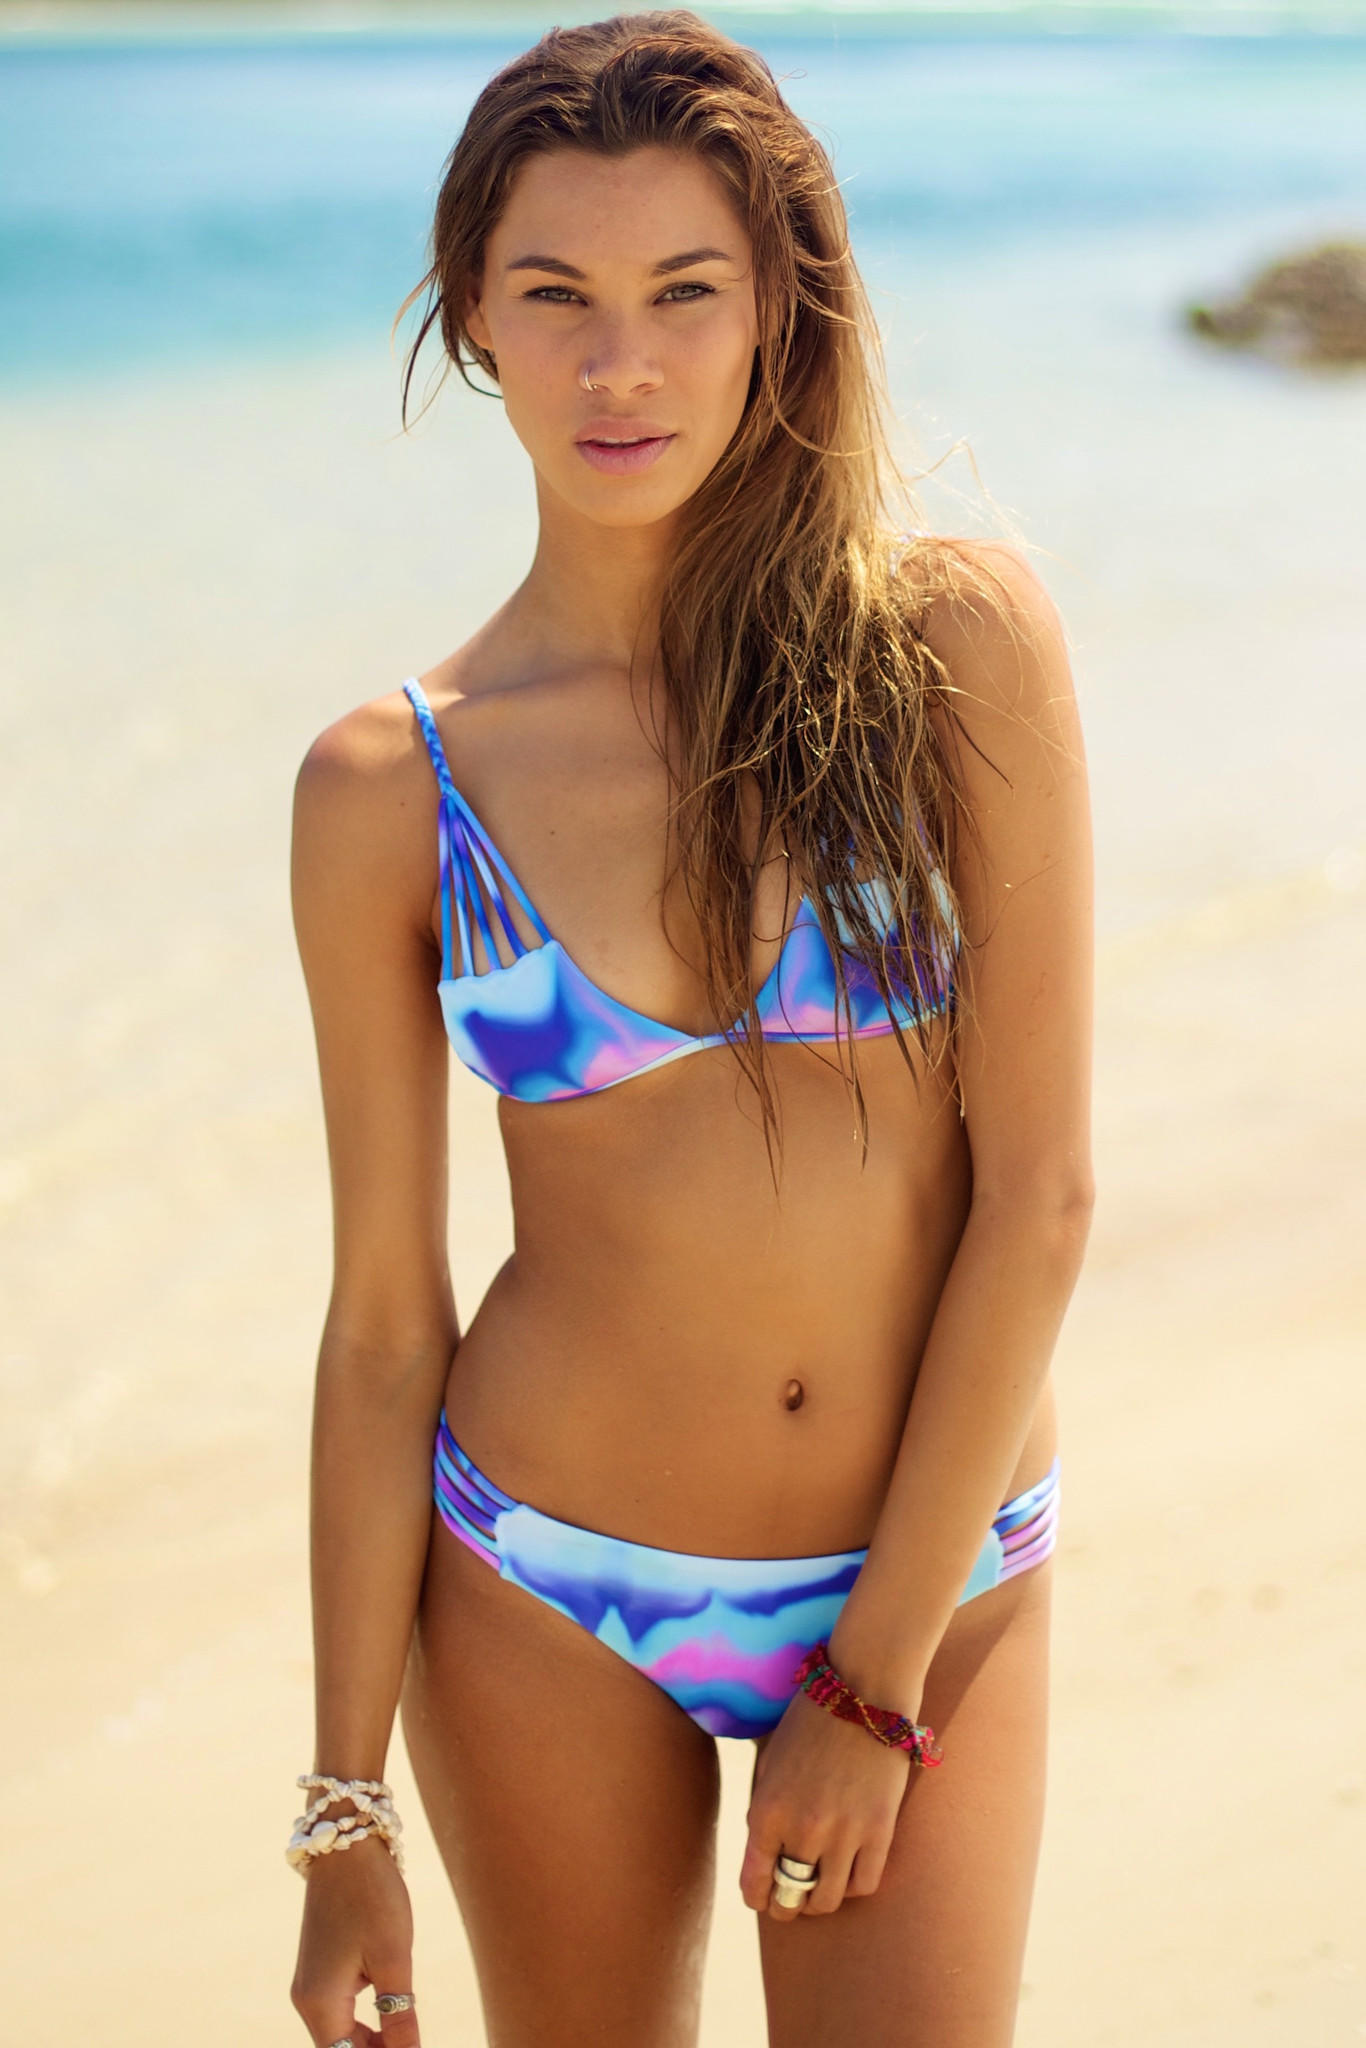 electric jellyfish from moana bikini | bras/swim suits